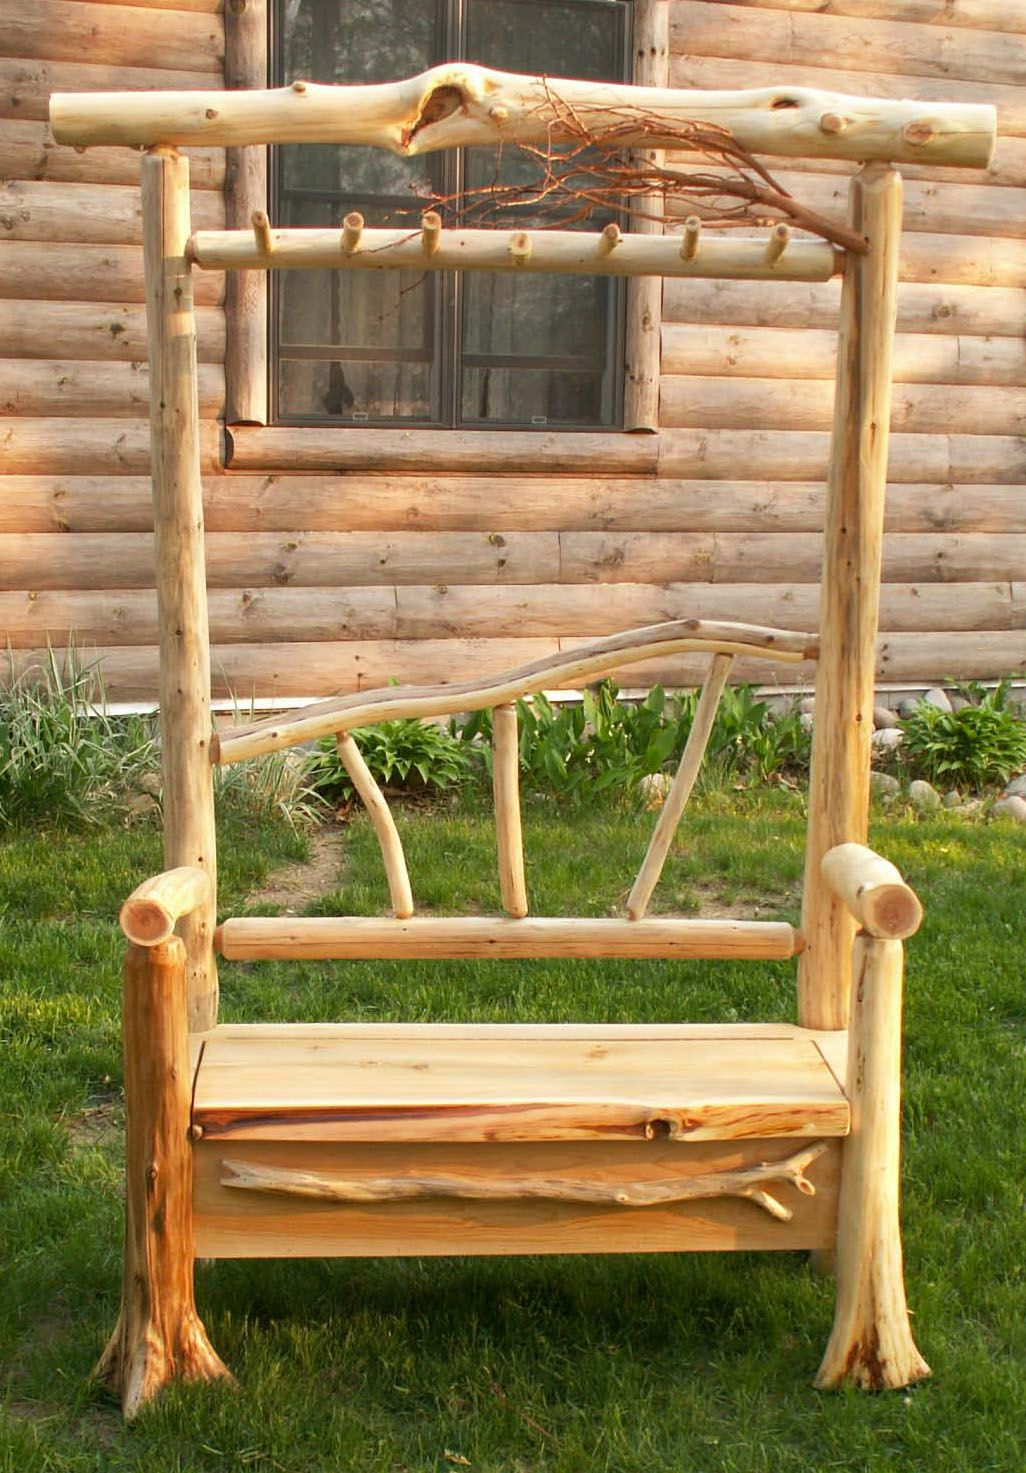 log bench ideas ideas for the home rustic log furniture log furniture cedar furniture. Black Bedroom Furniture Sets. Home Design Ideas